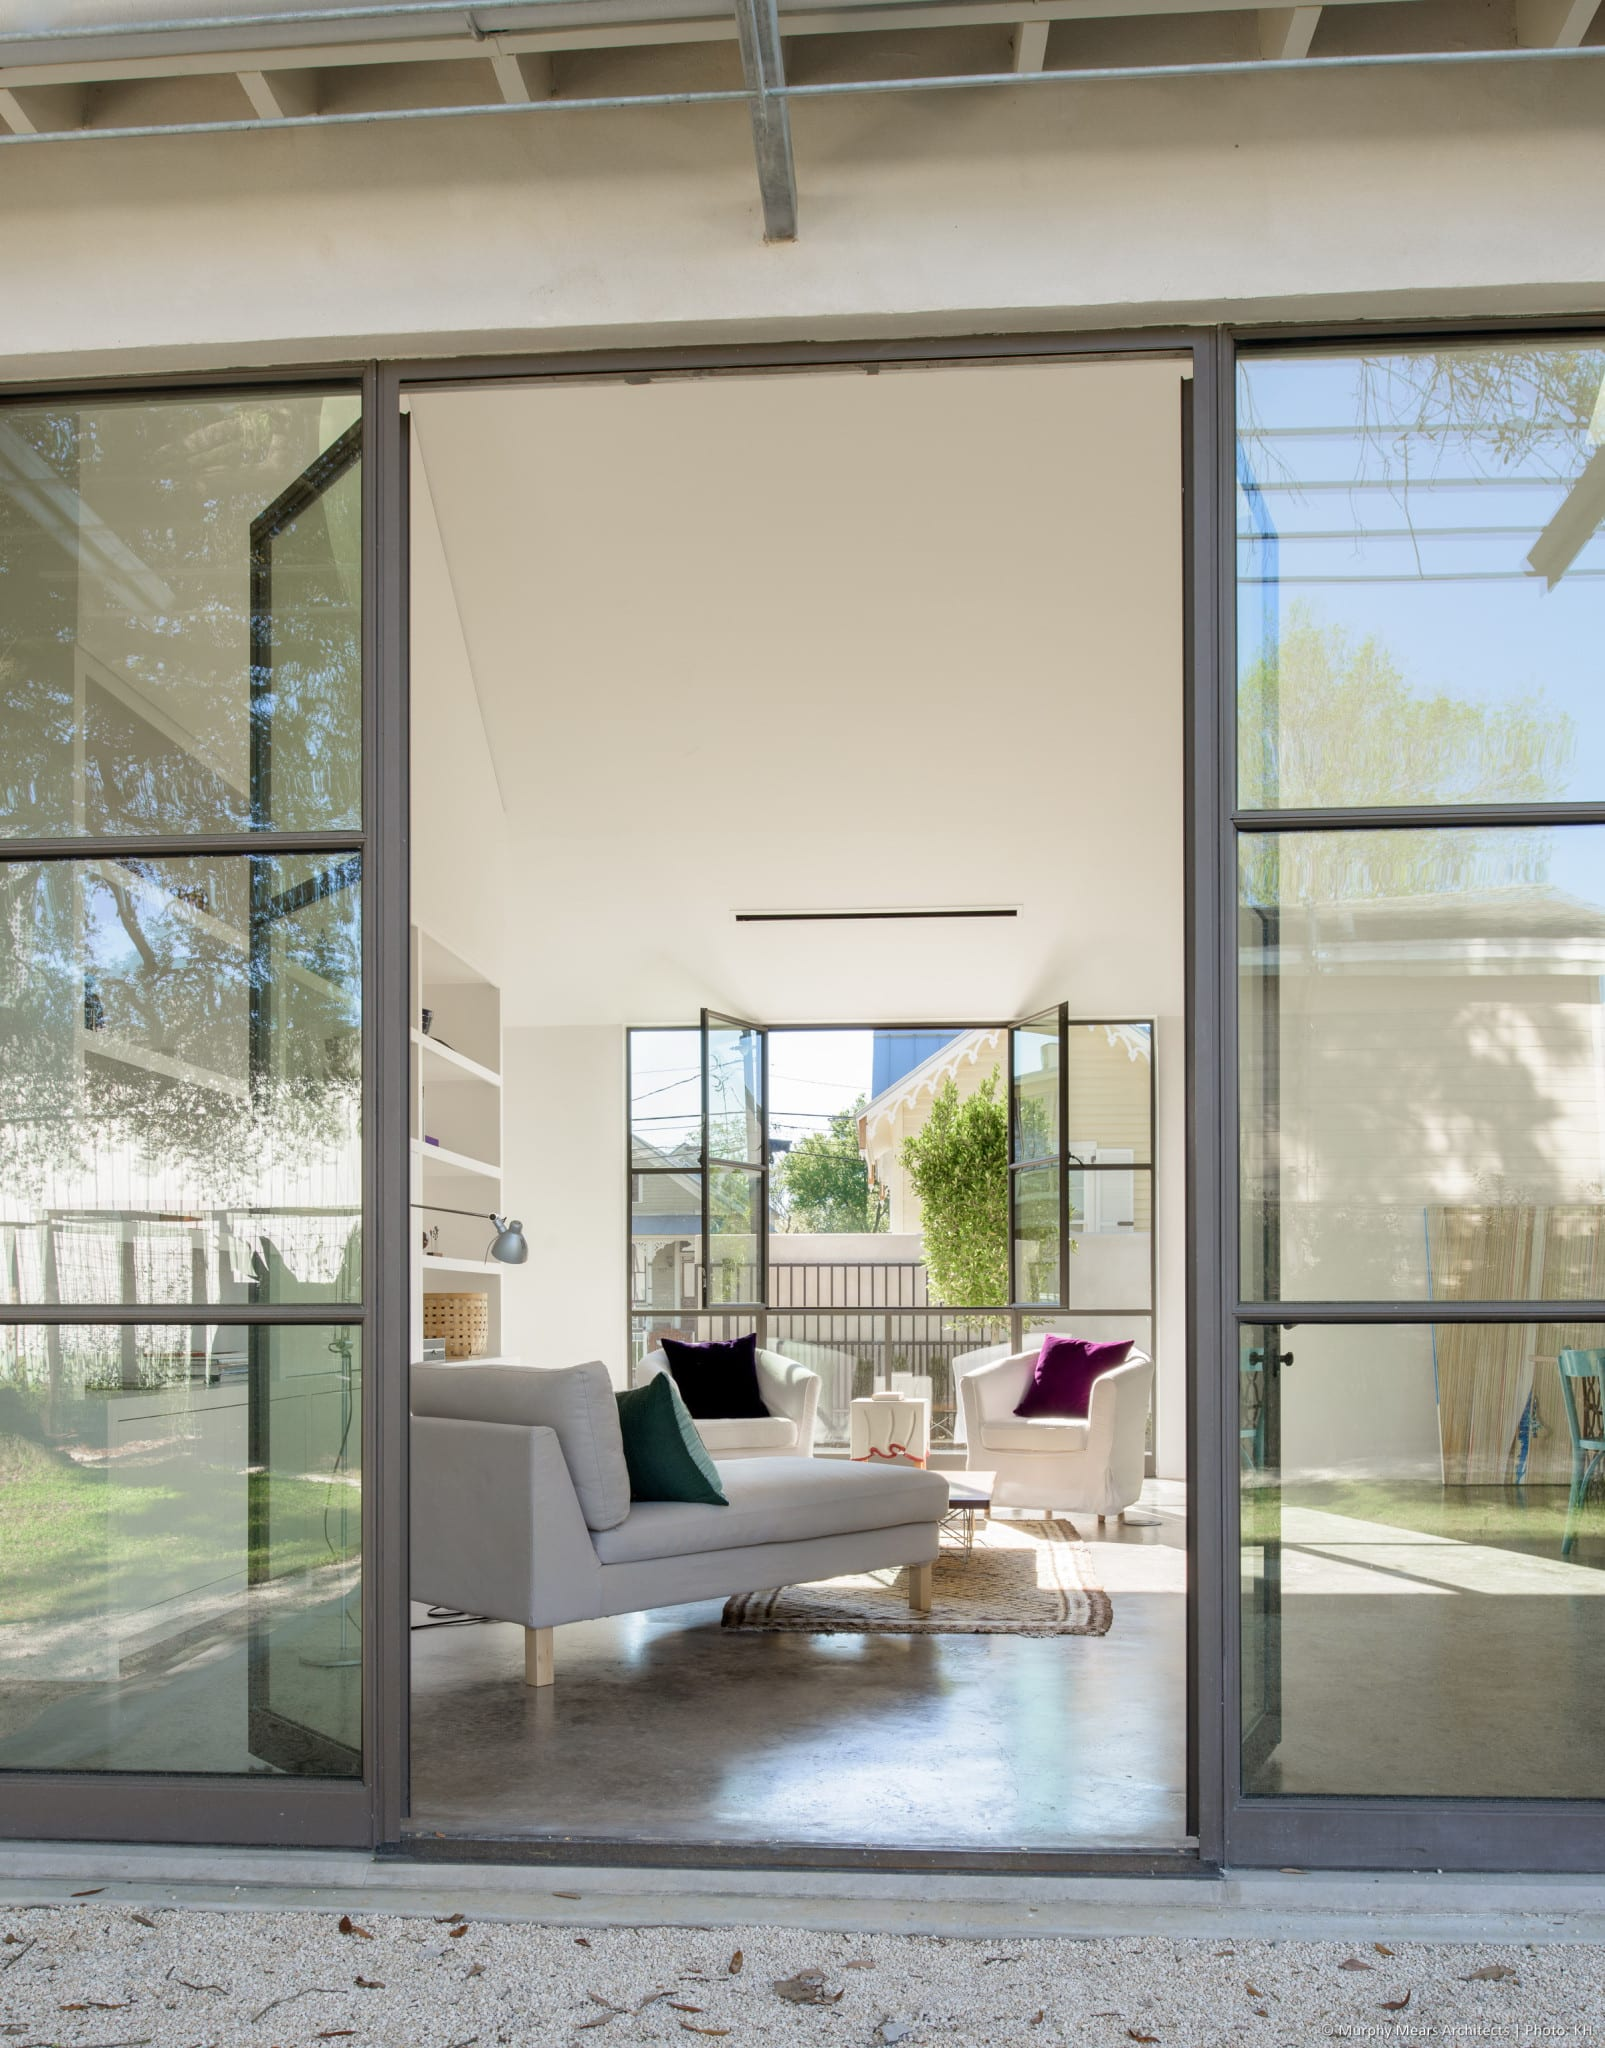 Doors and windows open to the front and back courtyards on each side of the living-dining-kitchen space.